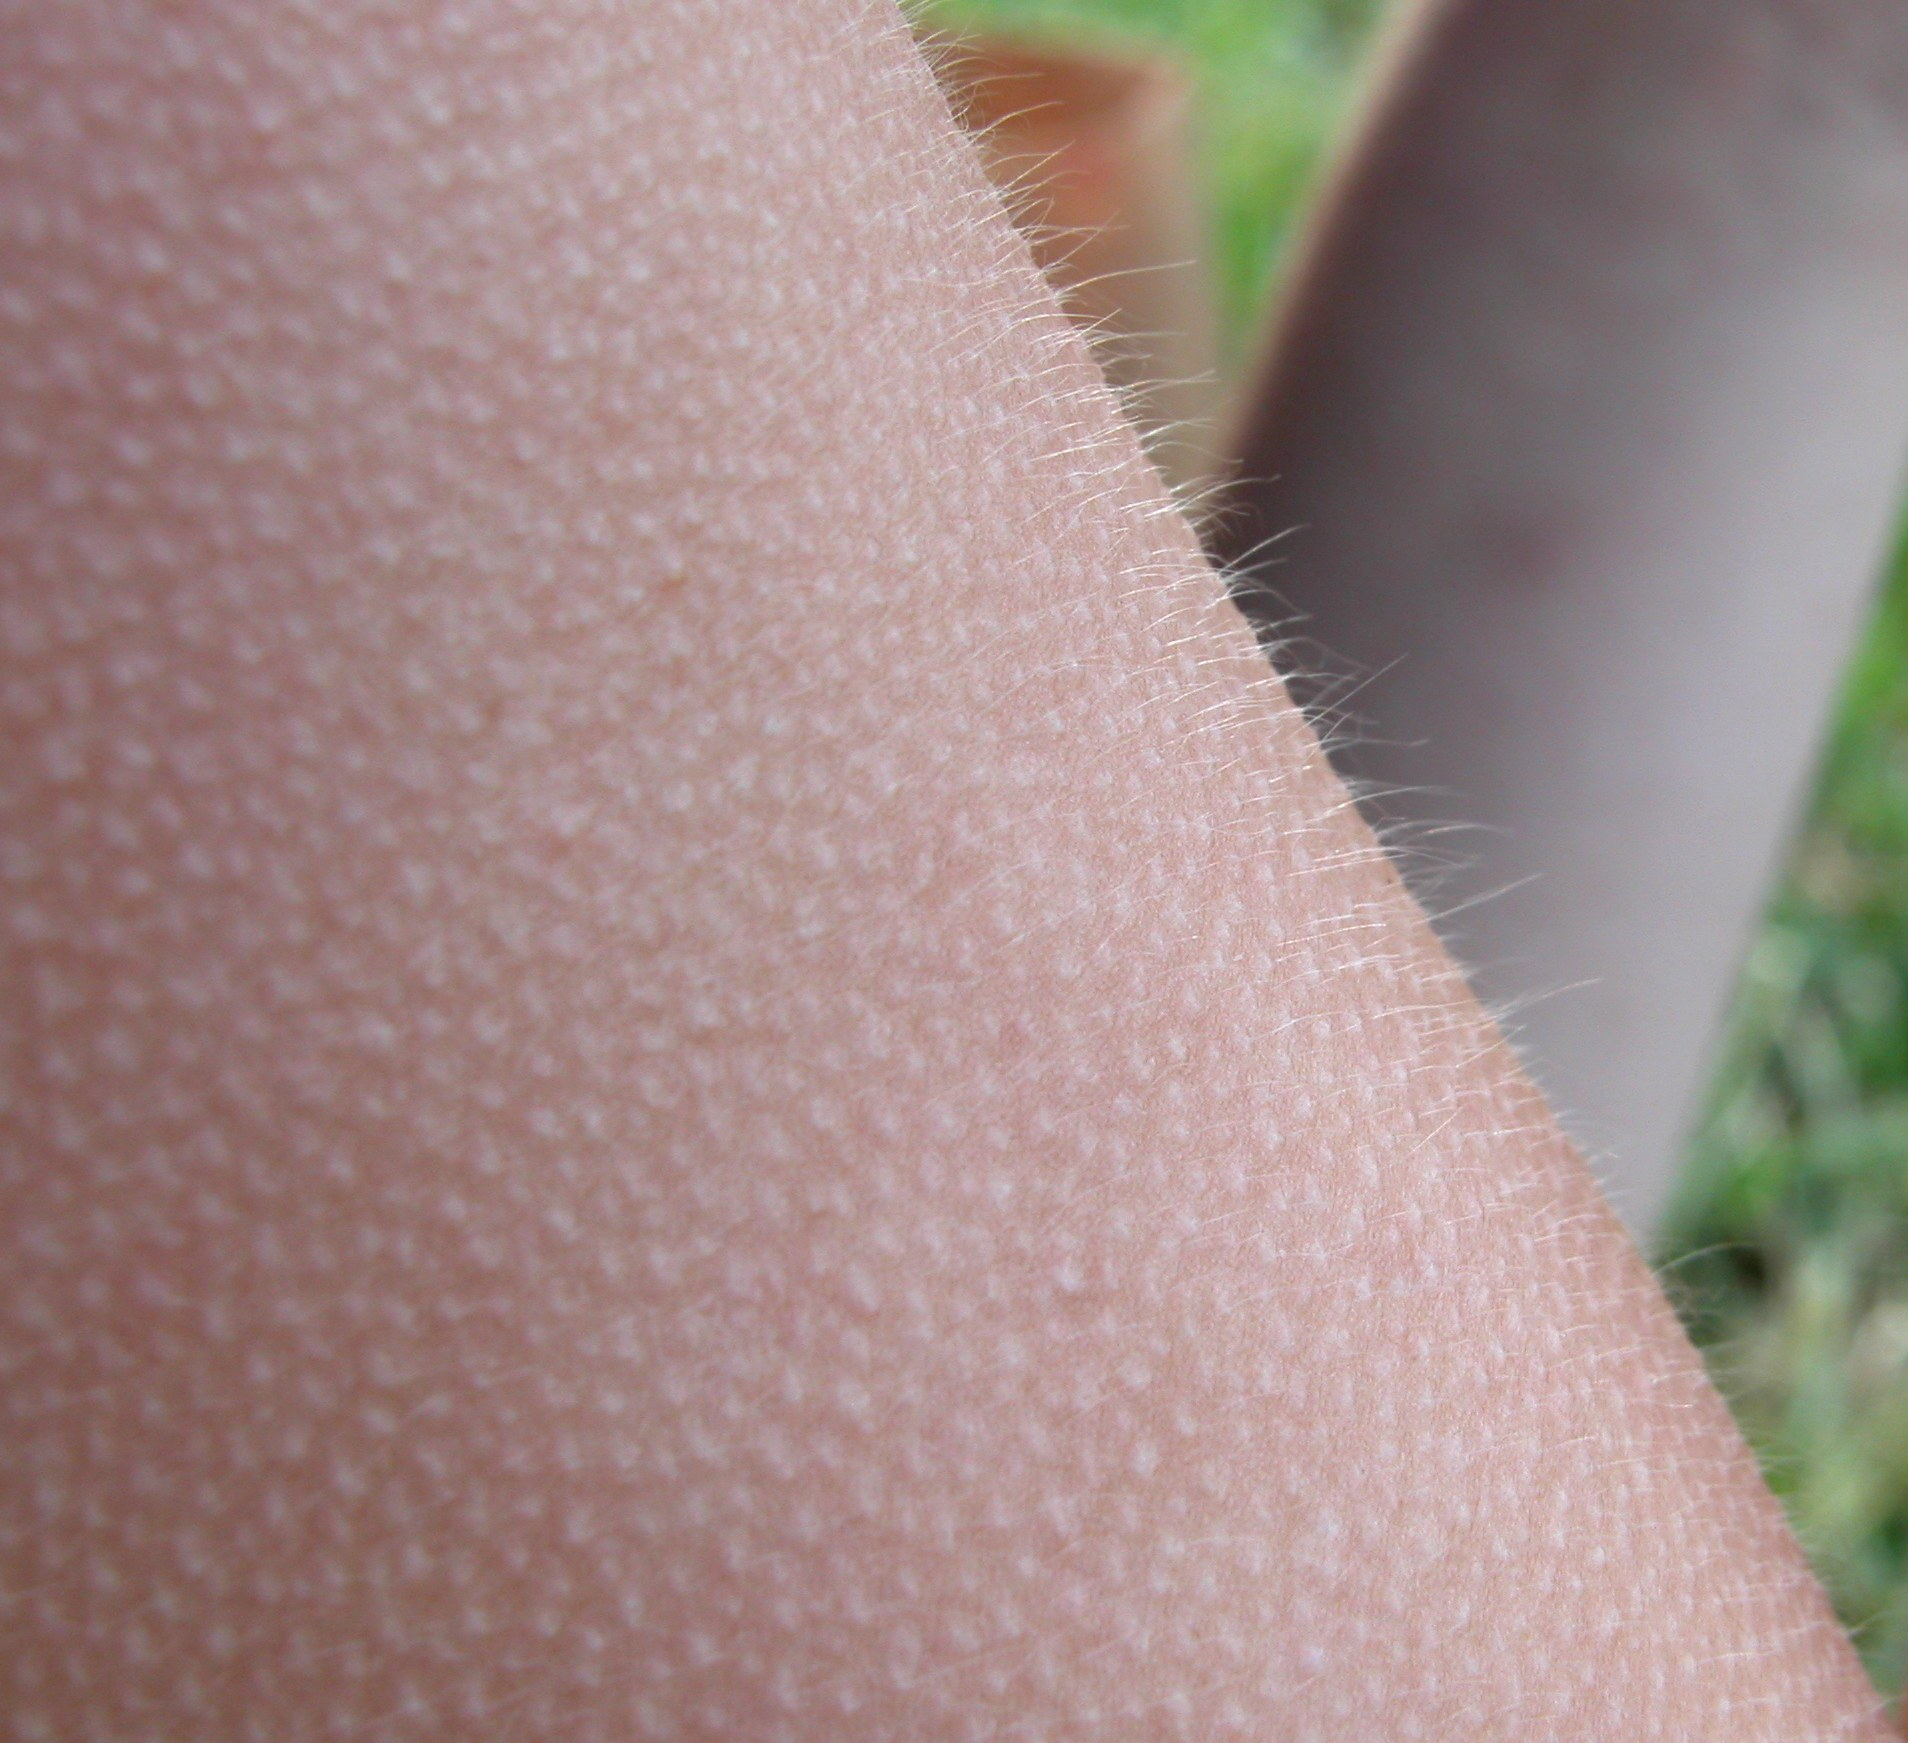 Goose bumps - Wikipedia